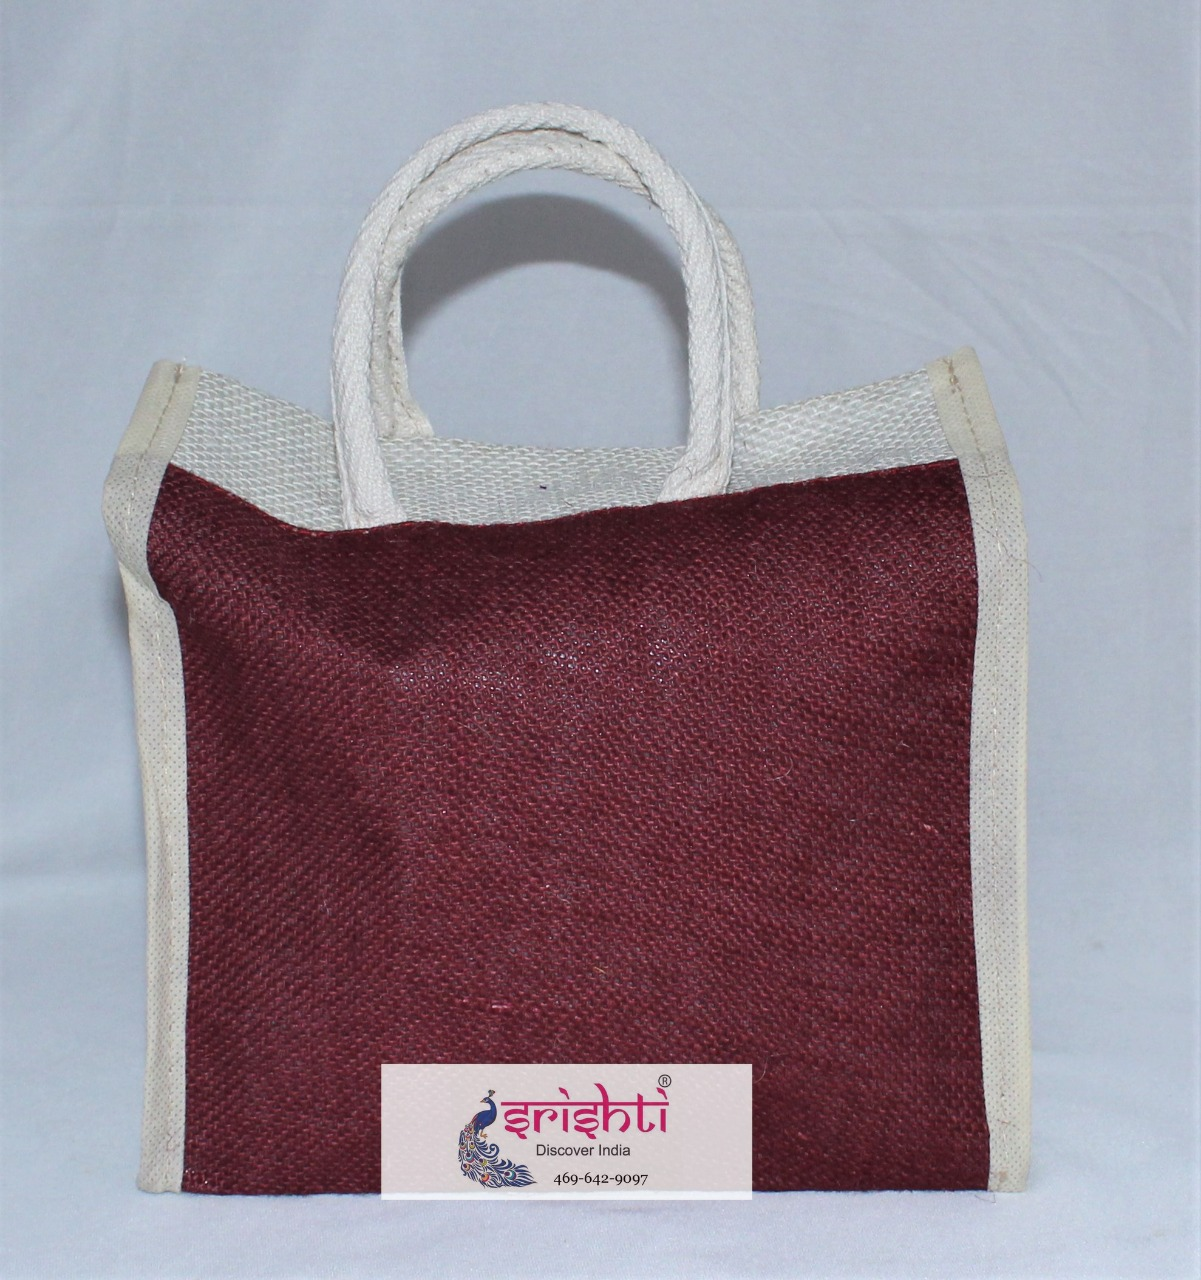 SJBK-Jute Maroon with White Color Bag